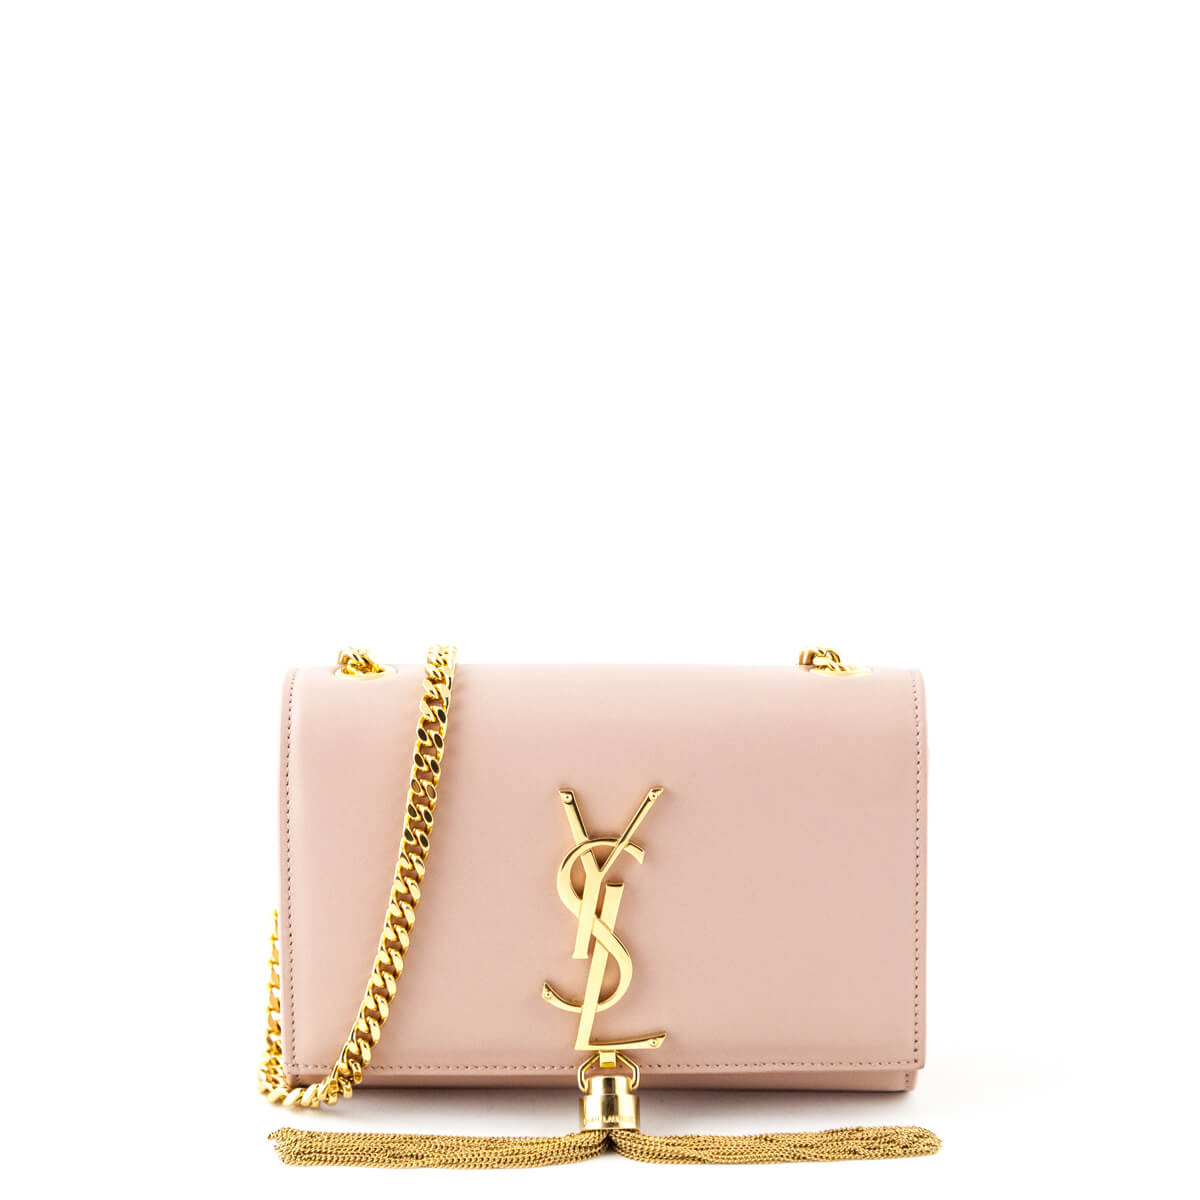 b912762f0248 Saint Laurent Pink Smooth Calfskin Small Tassel Kate bag - LOVE that BAG - Preowned  Authentic ...